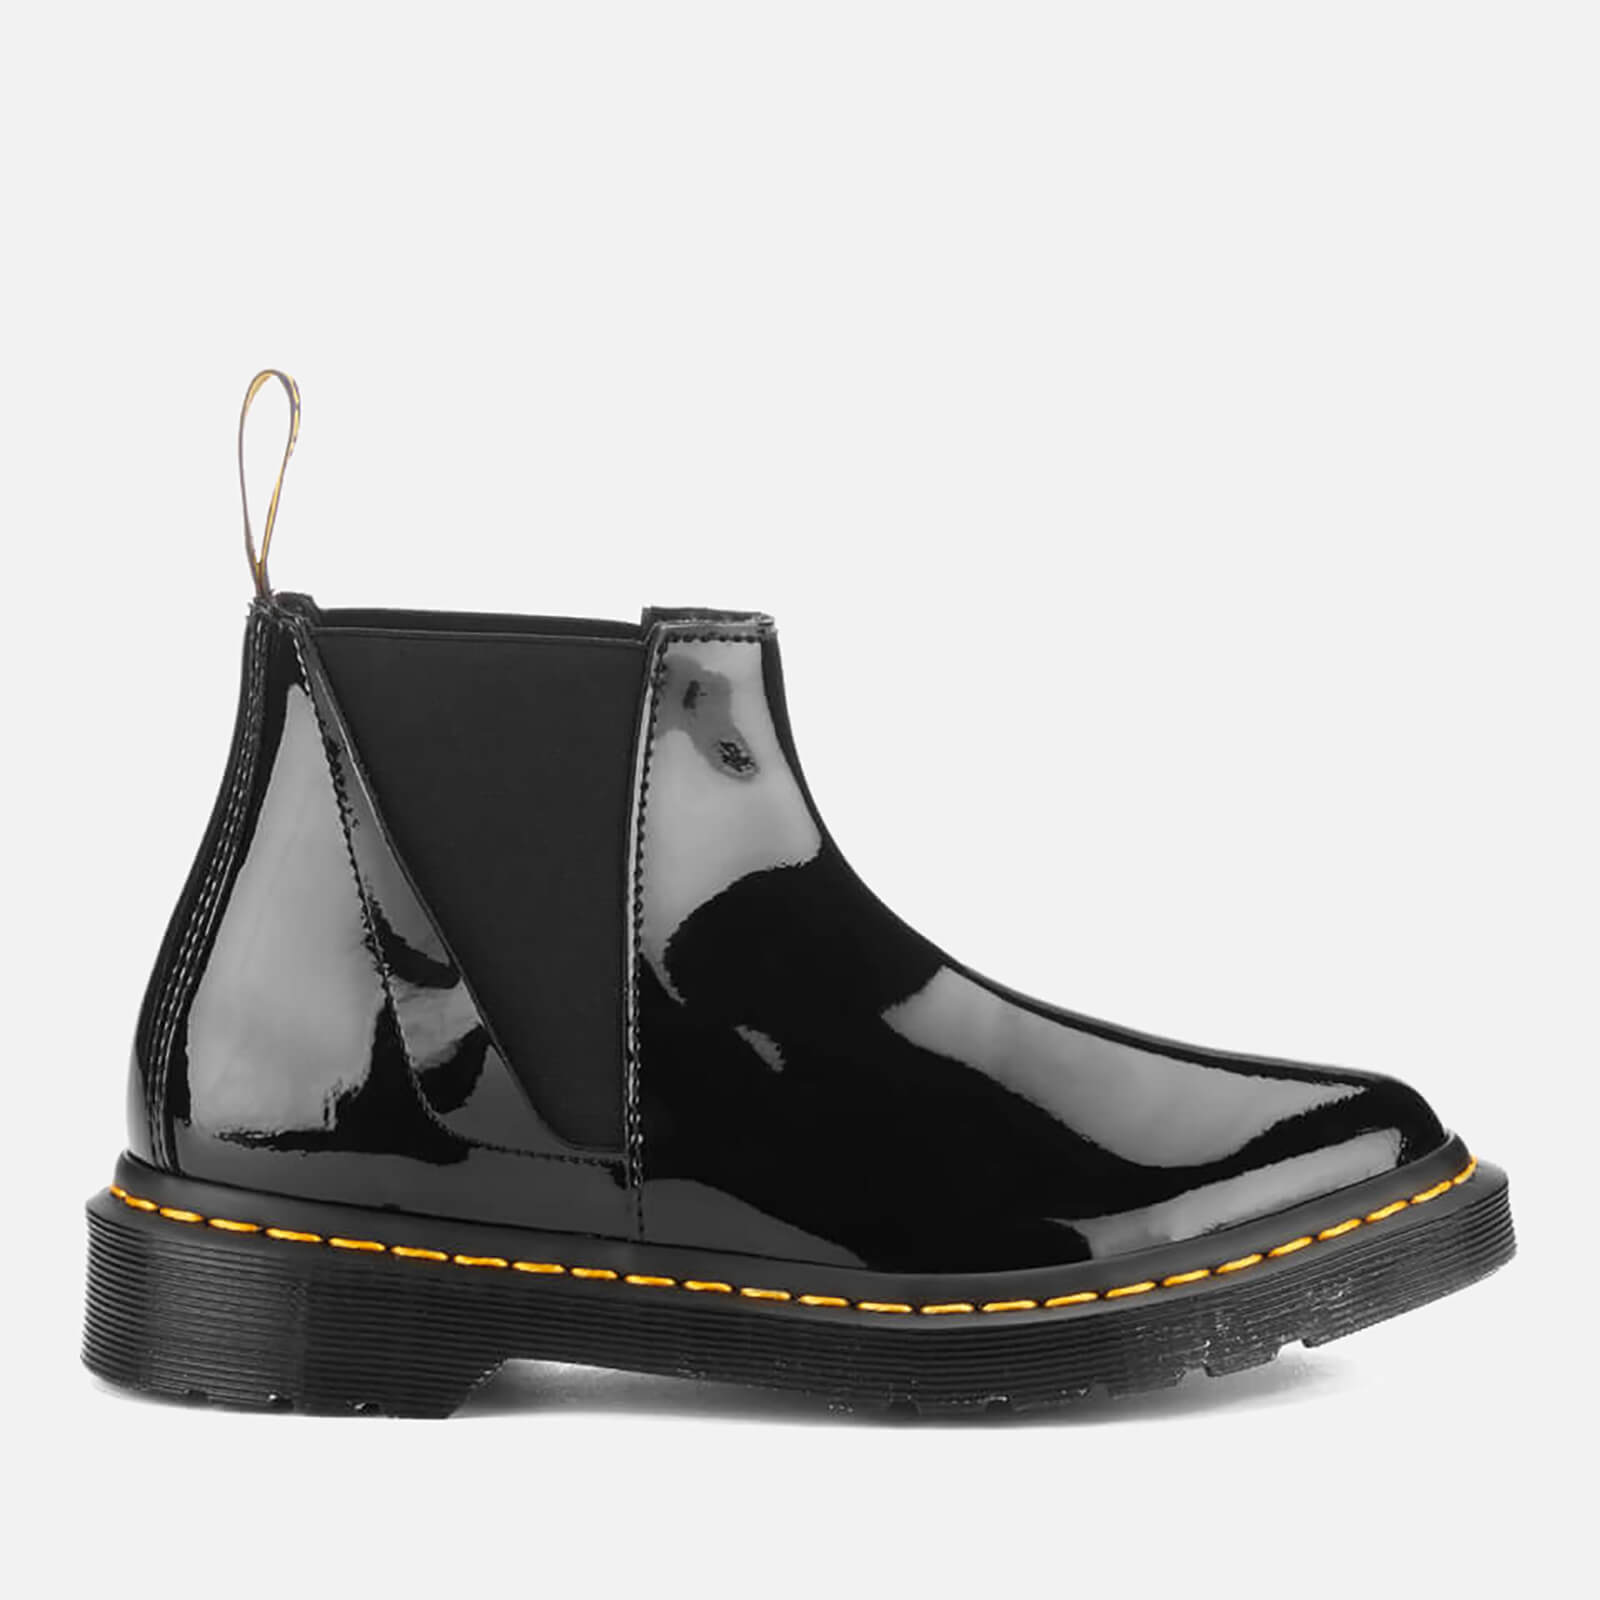 aceccb71a83 Dr. Martens Women's Pointed Bianca Patent Lamper Chelsea Boots - Black